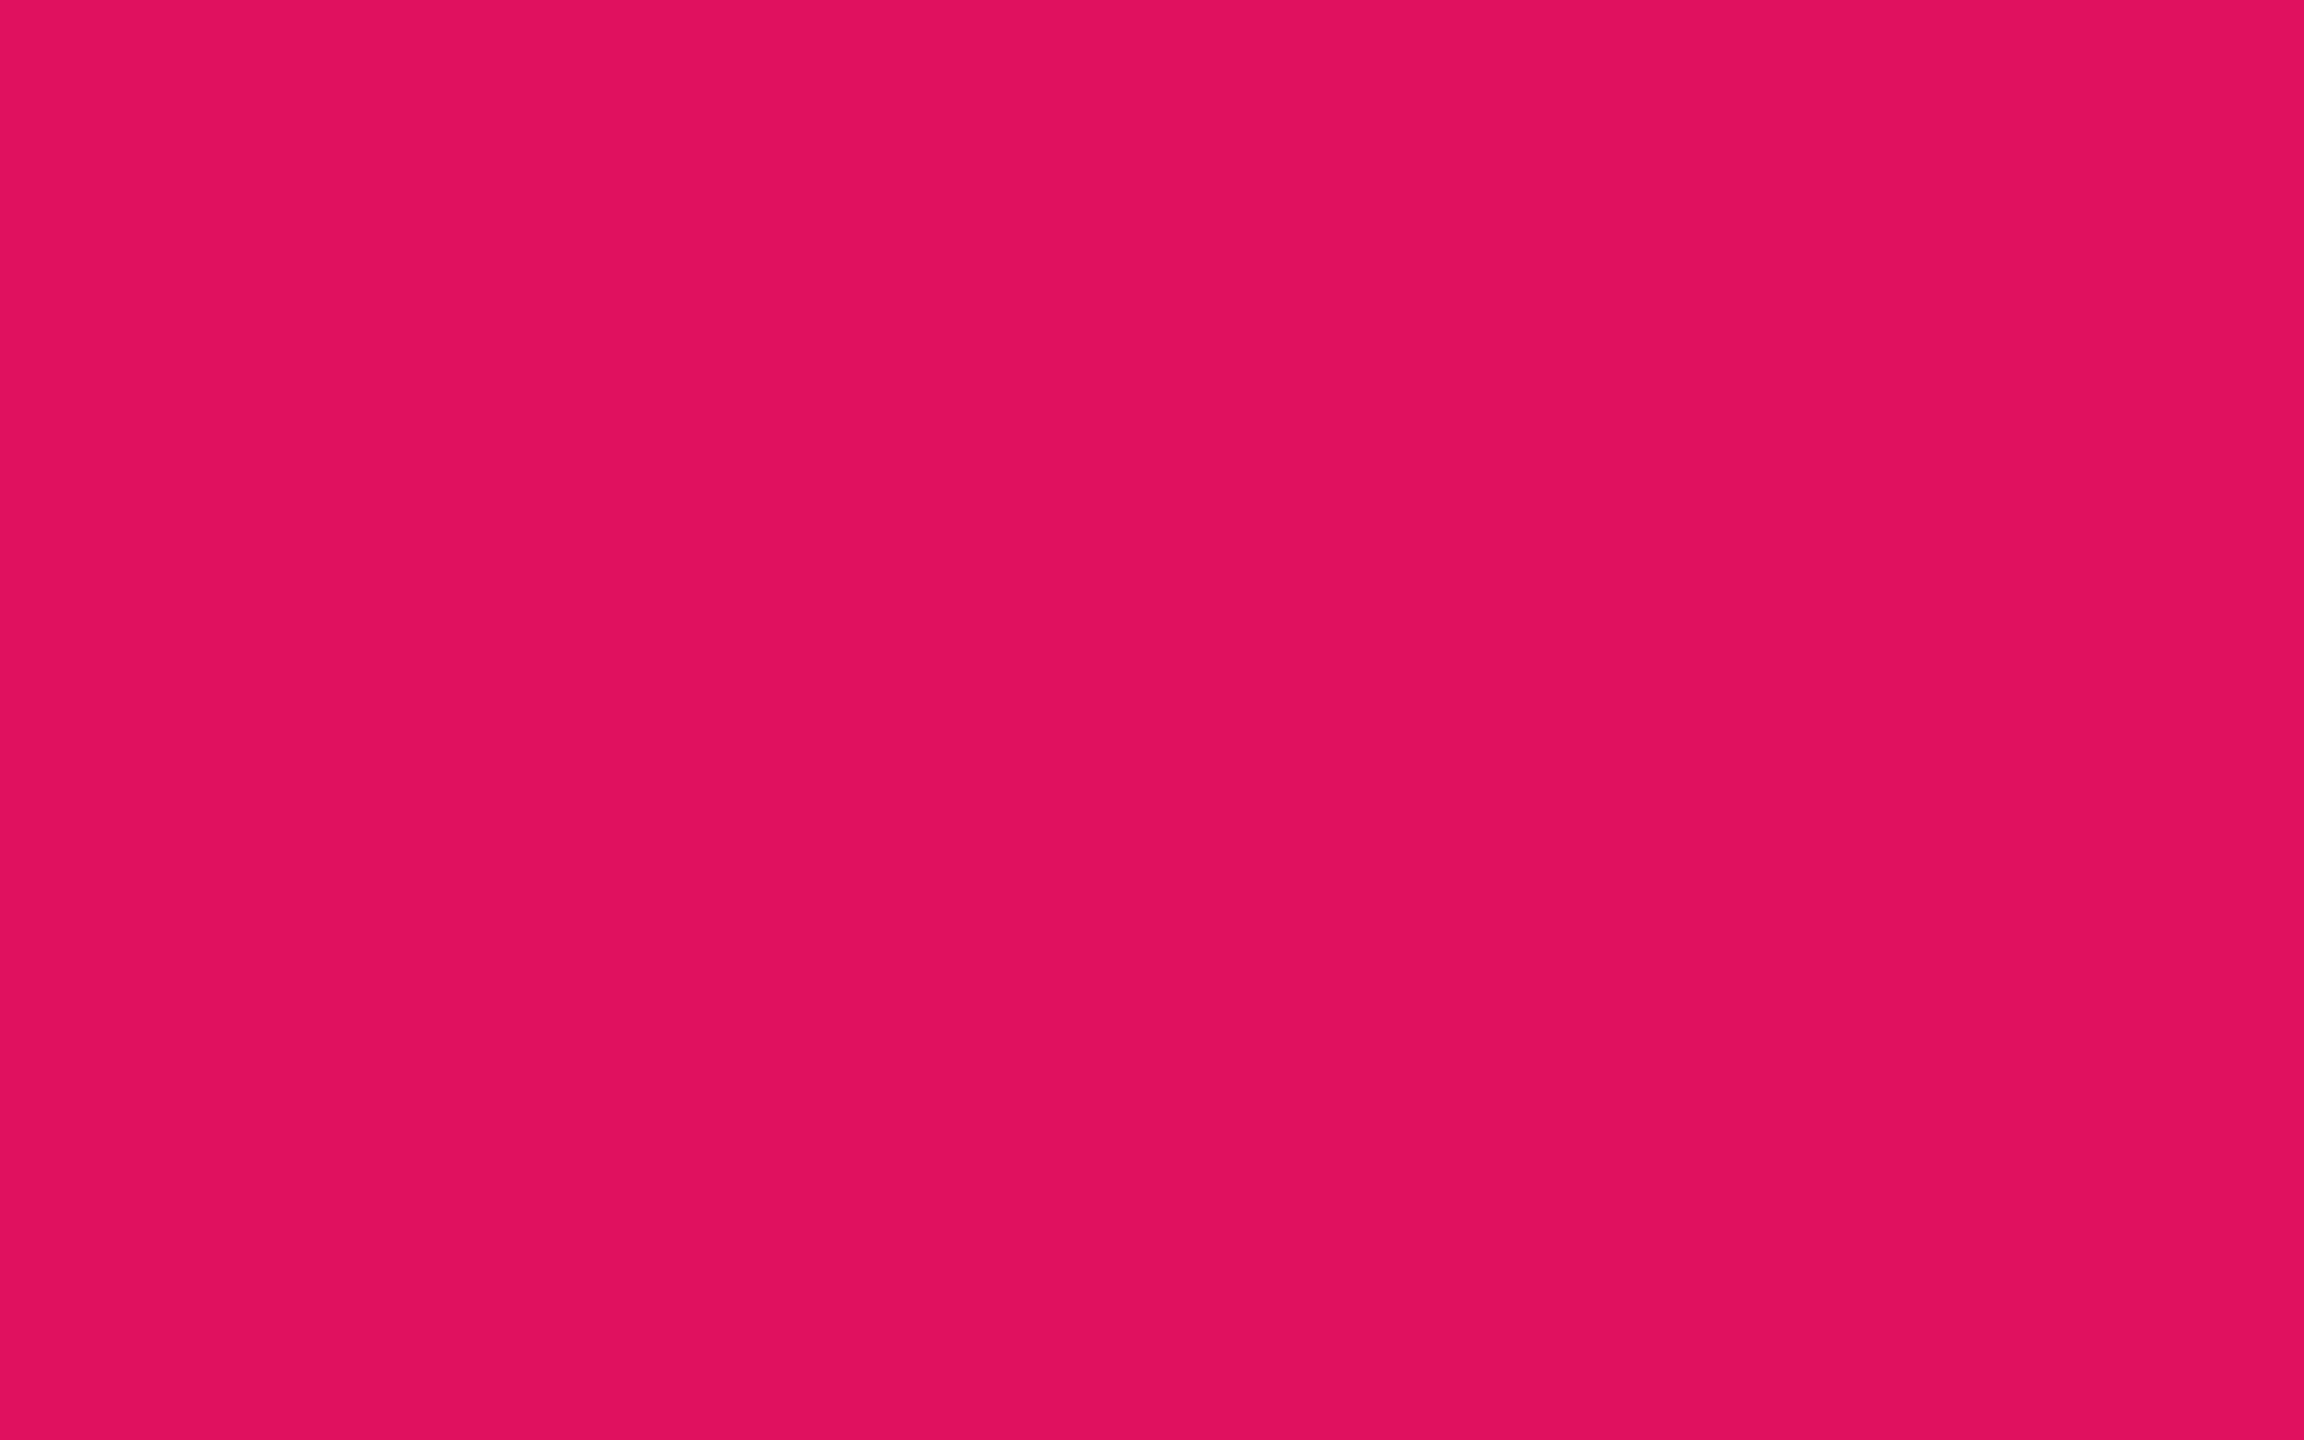 2304x1440 Ruby Solid Color Background